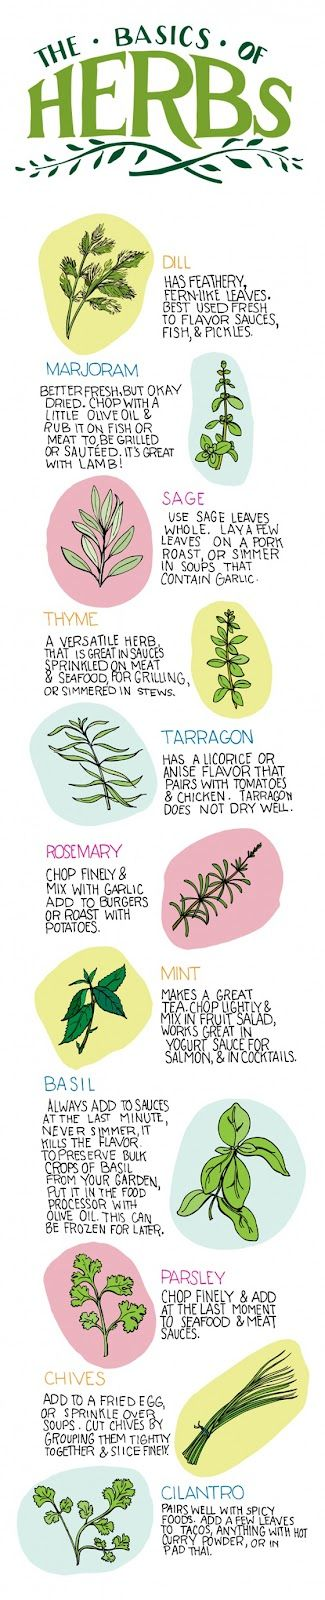 Creating a Herb Garden in Your Balcony or apartment